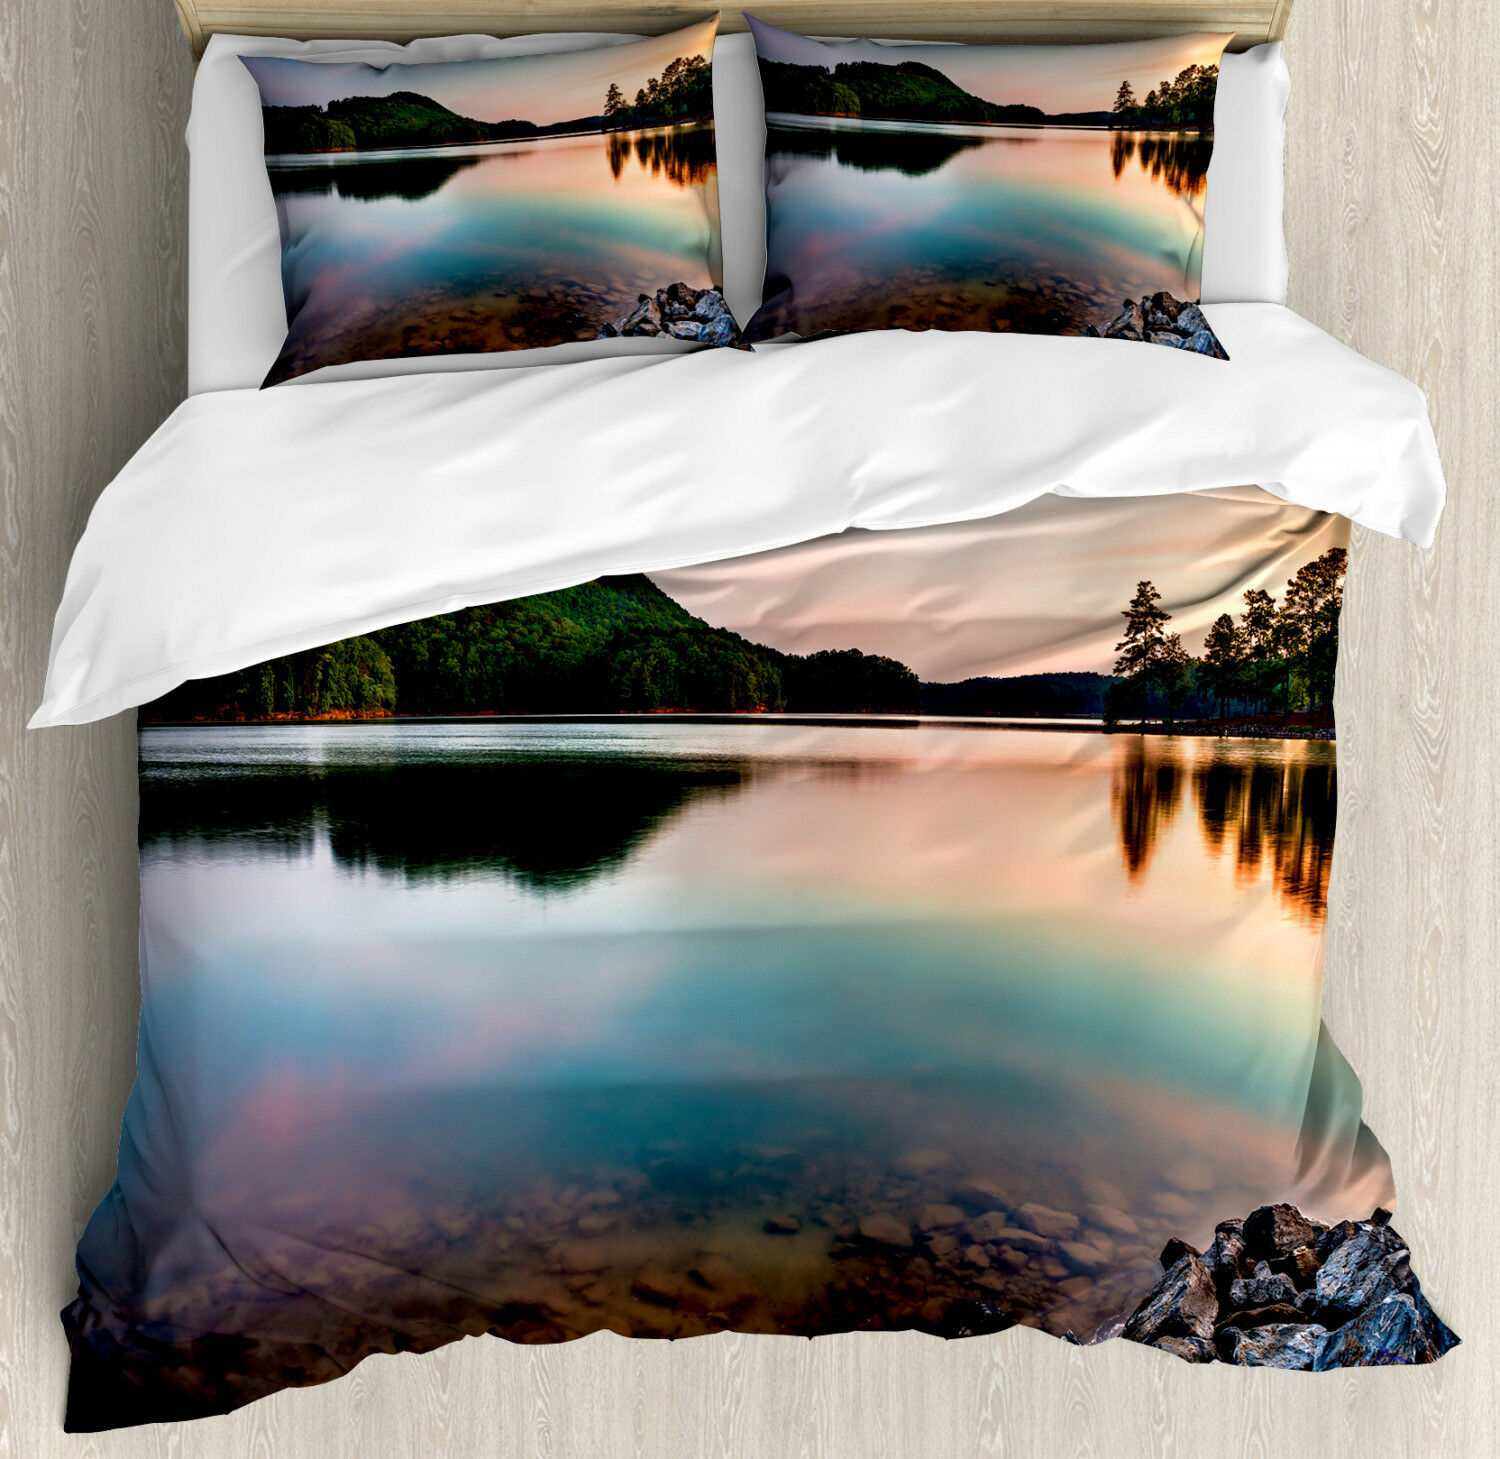 Lake Duvet Cover Set with Pillow Shams Allatoona Red Top Mountain Print